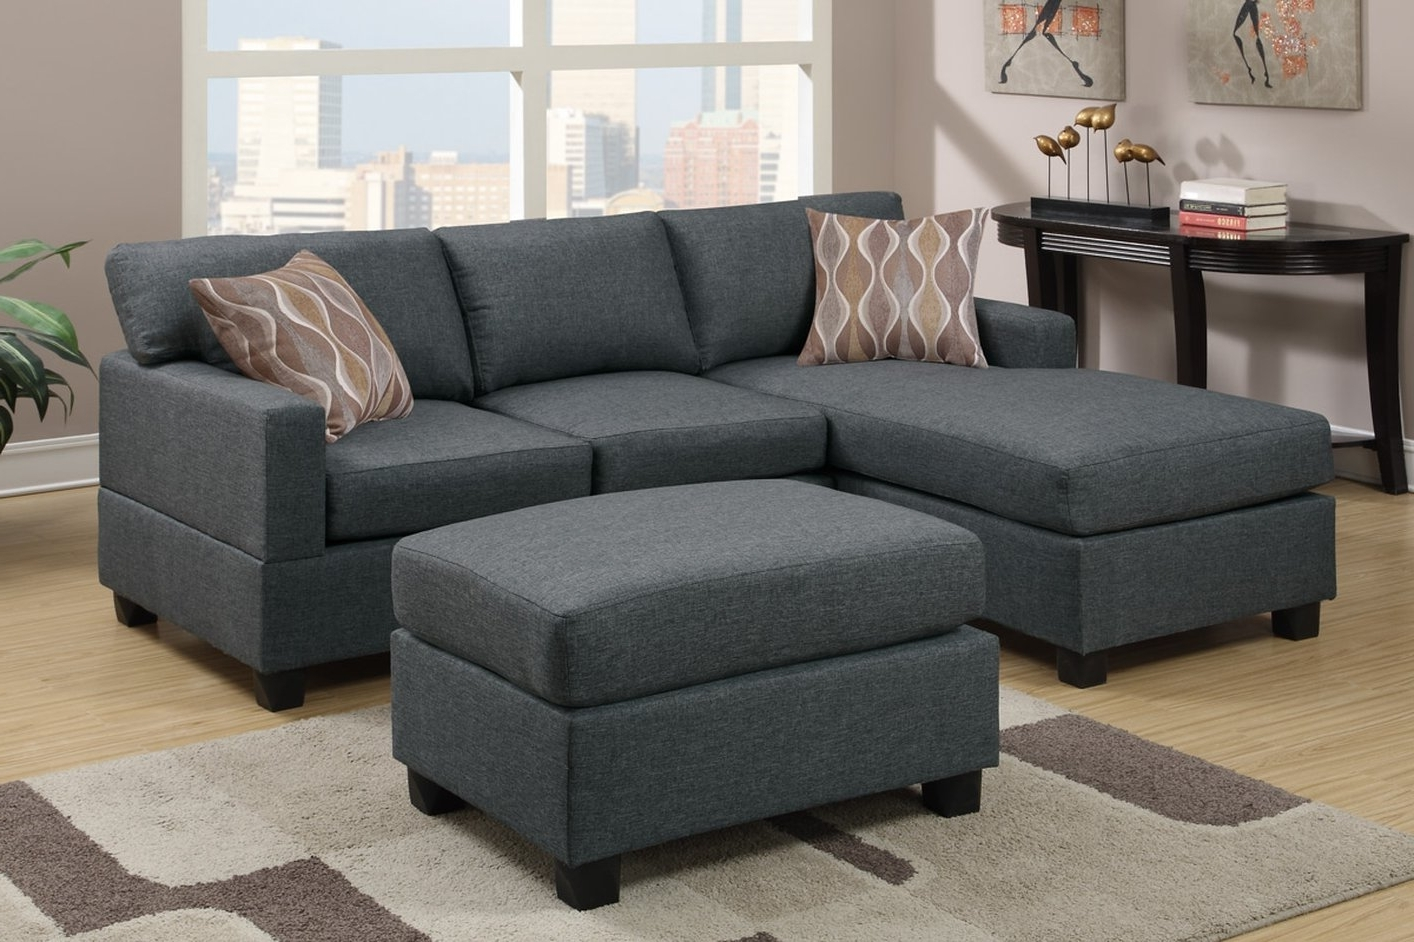 Latest Sofas With Ottoman With Regard To Sectional Sofa Design: Best Sectional Sofas With Ottoman Design (View 8 of 20)